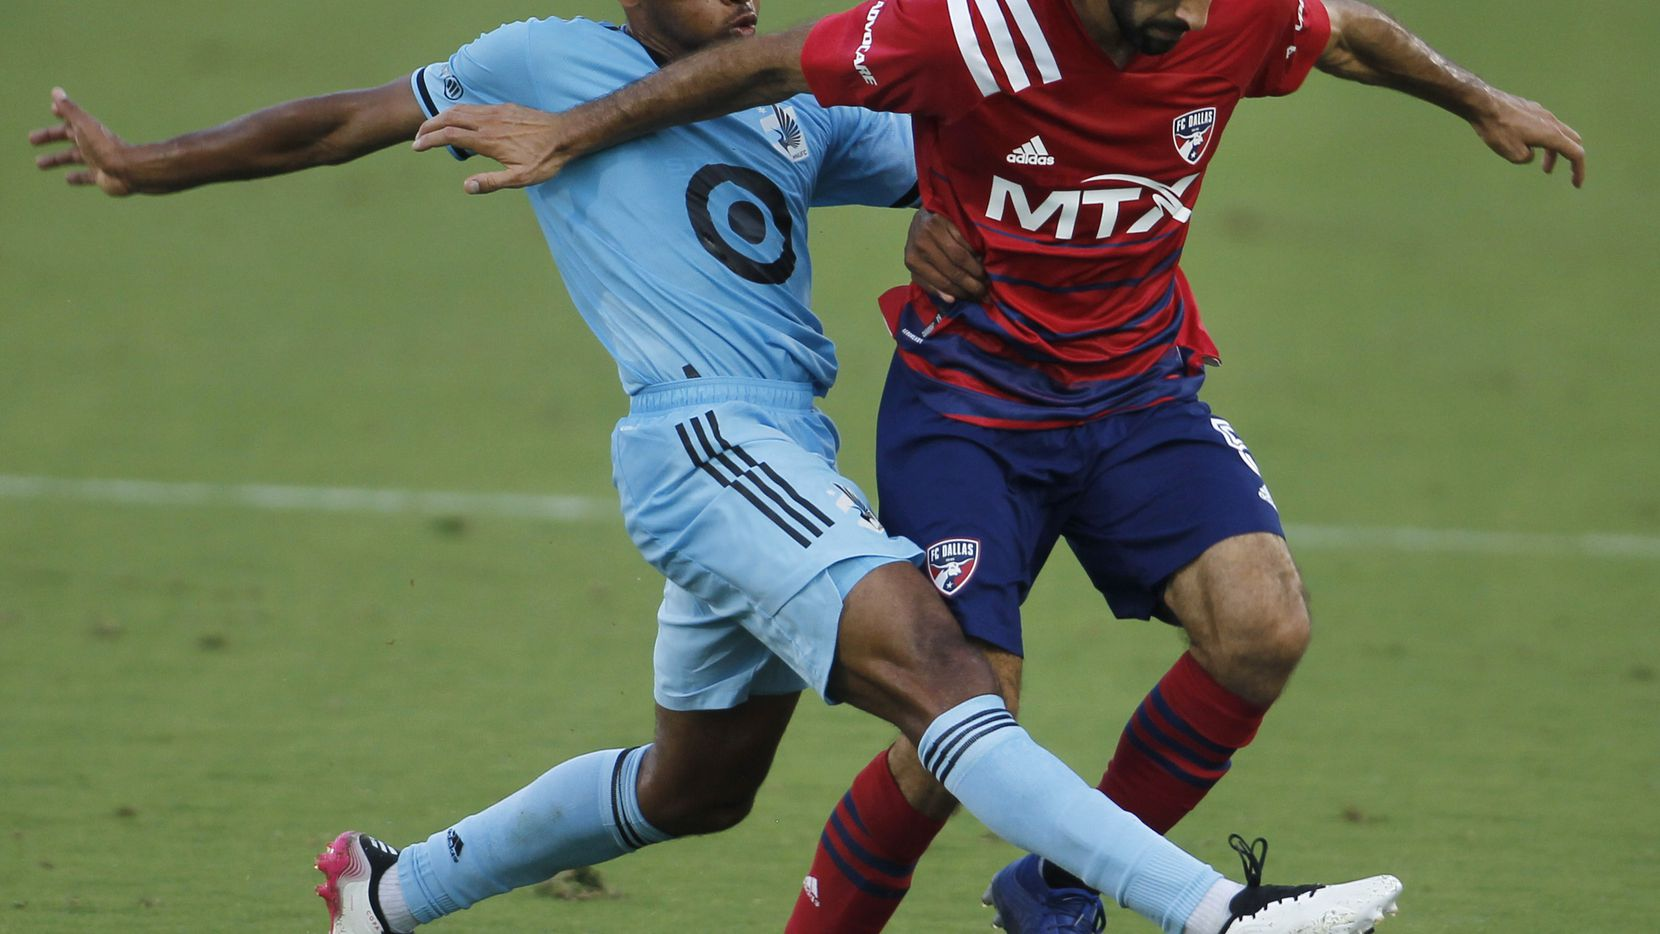 FC Dallas midfielder Facundo Quignon (5), right, tries to maintain ball control as Minnesota United midfielder Jacon Hayes (5), challenges defensively during first half play. The two teams played their MLS match at Toyota Stadium in Frisco on June 19, 2021. (Steve Hamm/ Special Contributor)